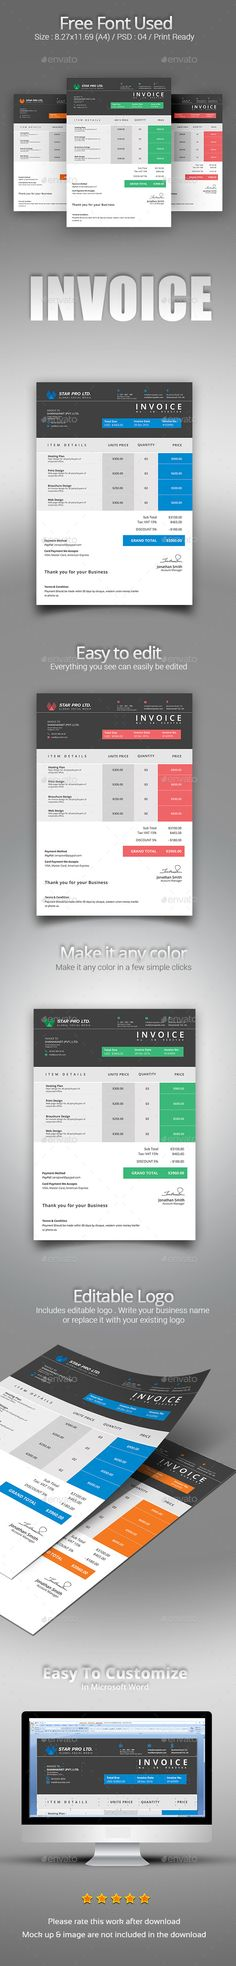 Resume Photoshop illustrator, Template and Cv template - microsoft word invoice template free download